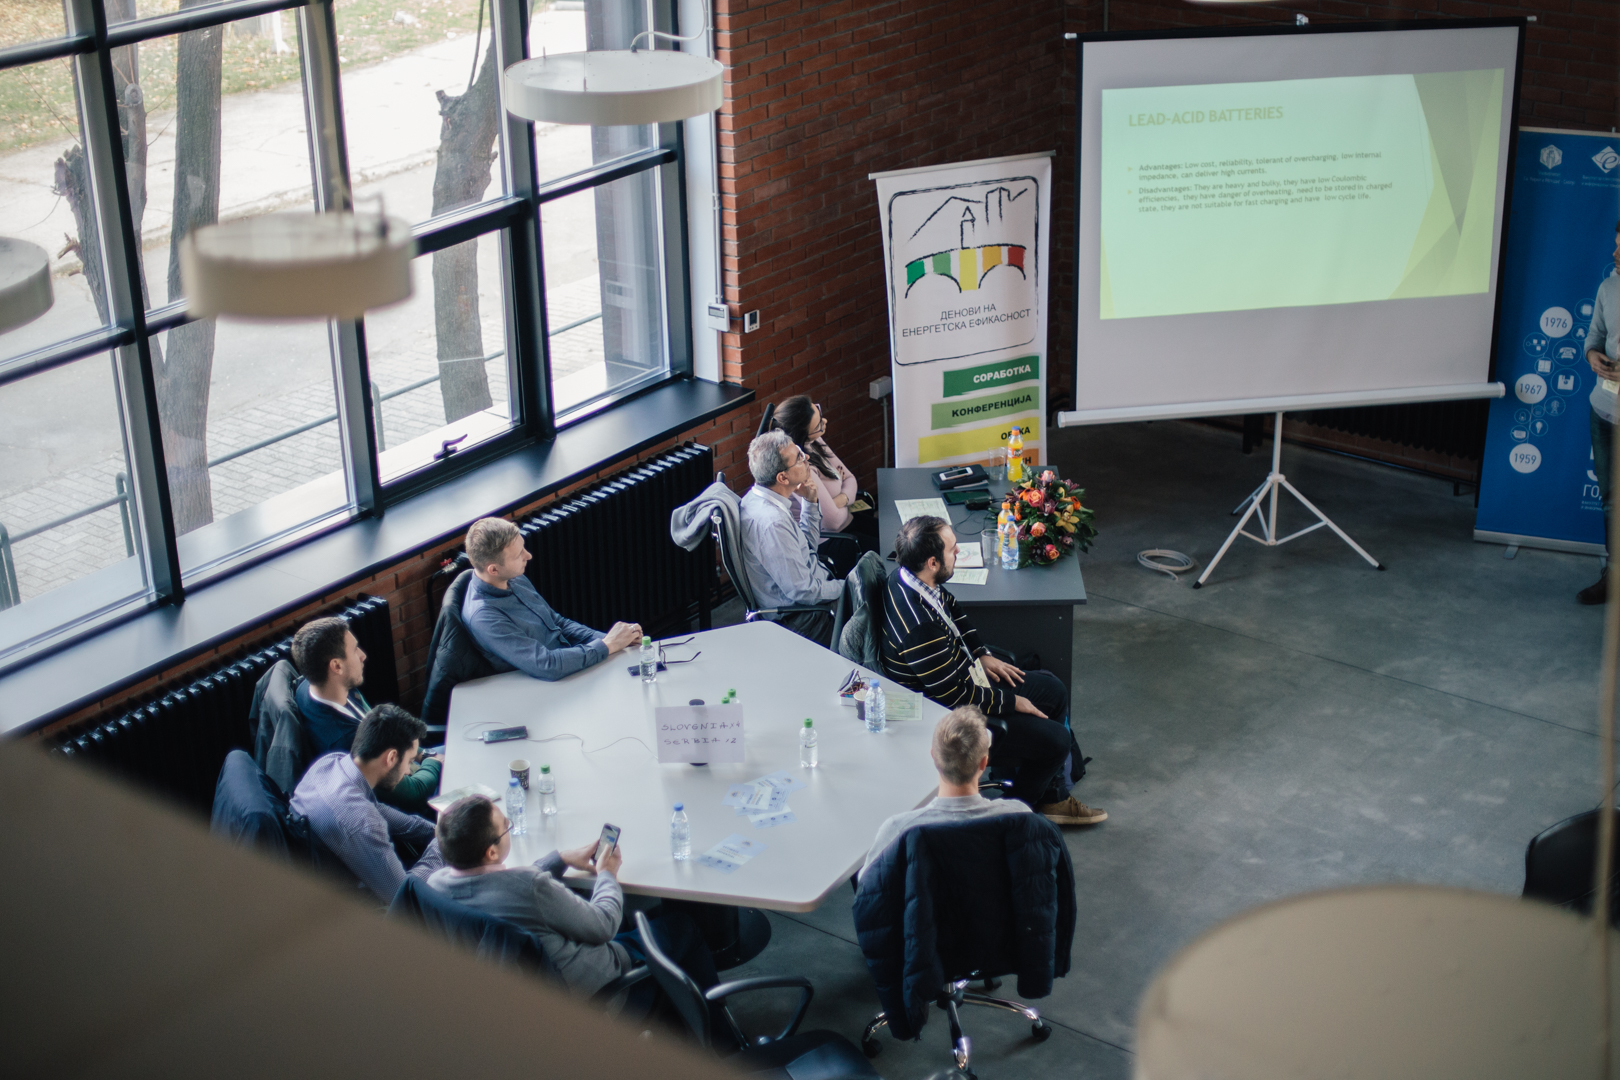 SCEESD & ACCELERATOR UKIM – CALL FOR APPLICATION FOR VENTURE ACADEMY TURN YOUR SCIENTIFIC PAPERS INTO BUSINESS!